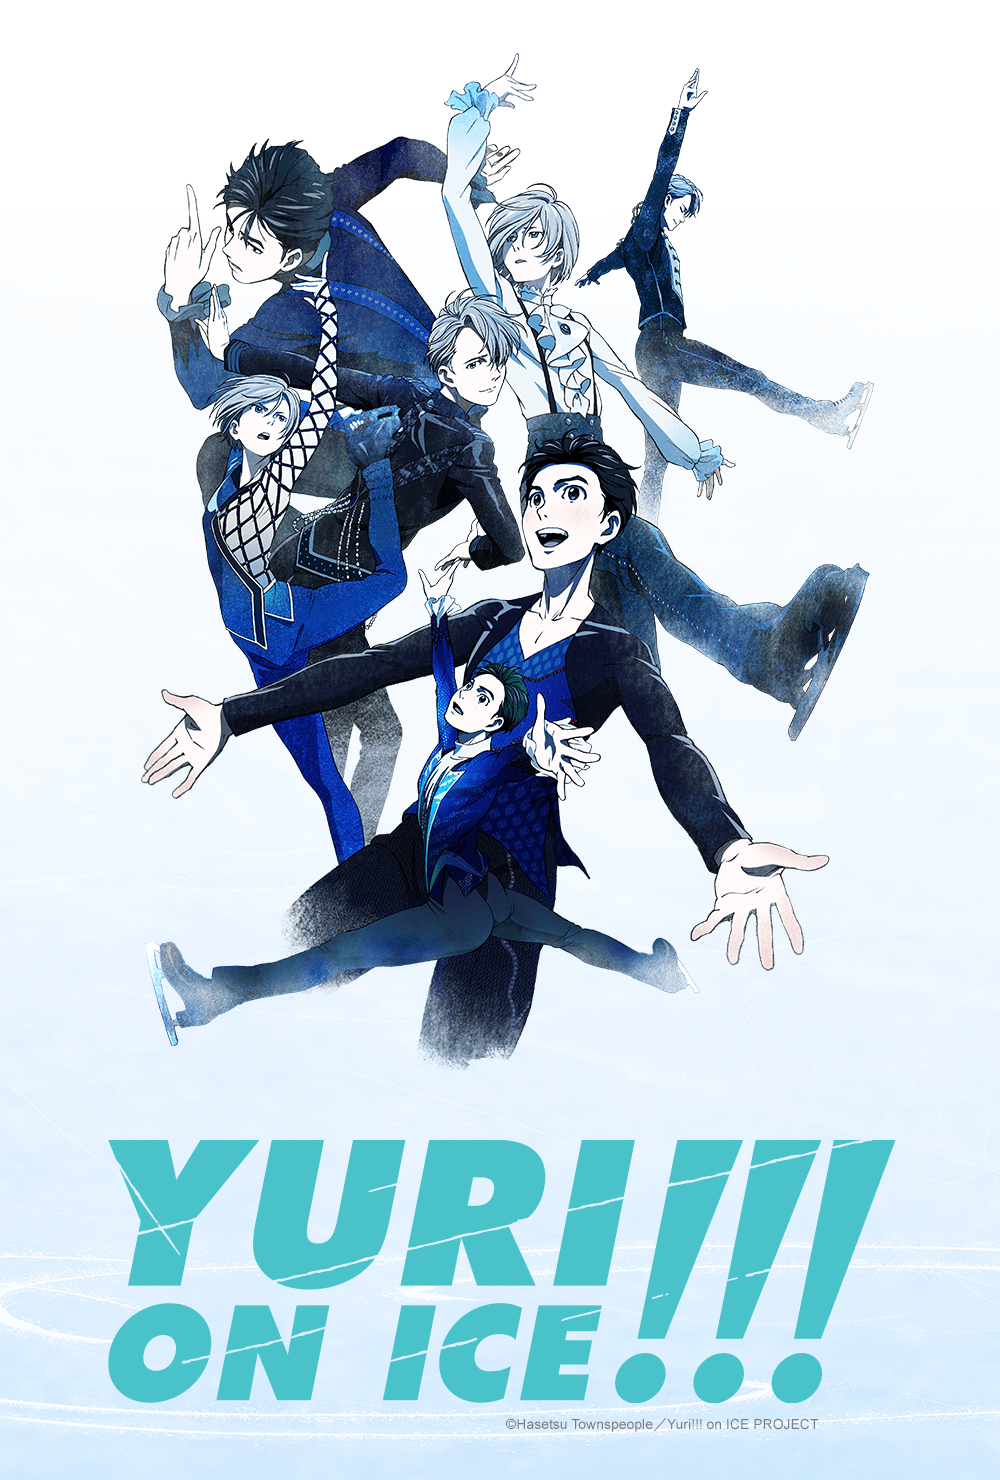 Yuri!!! on ICE Series Marathon